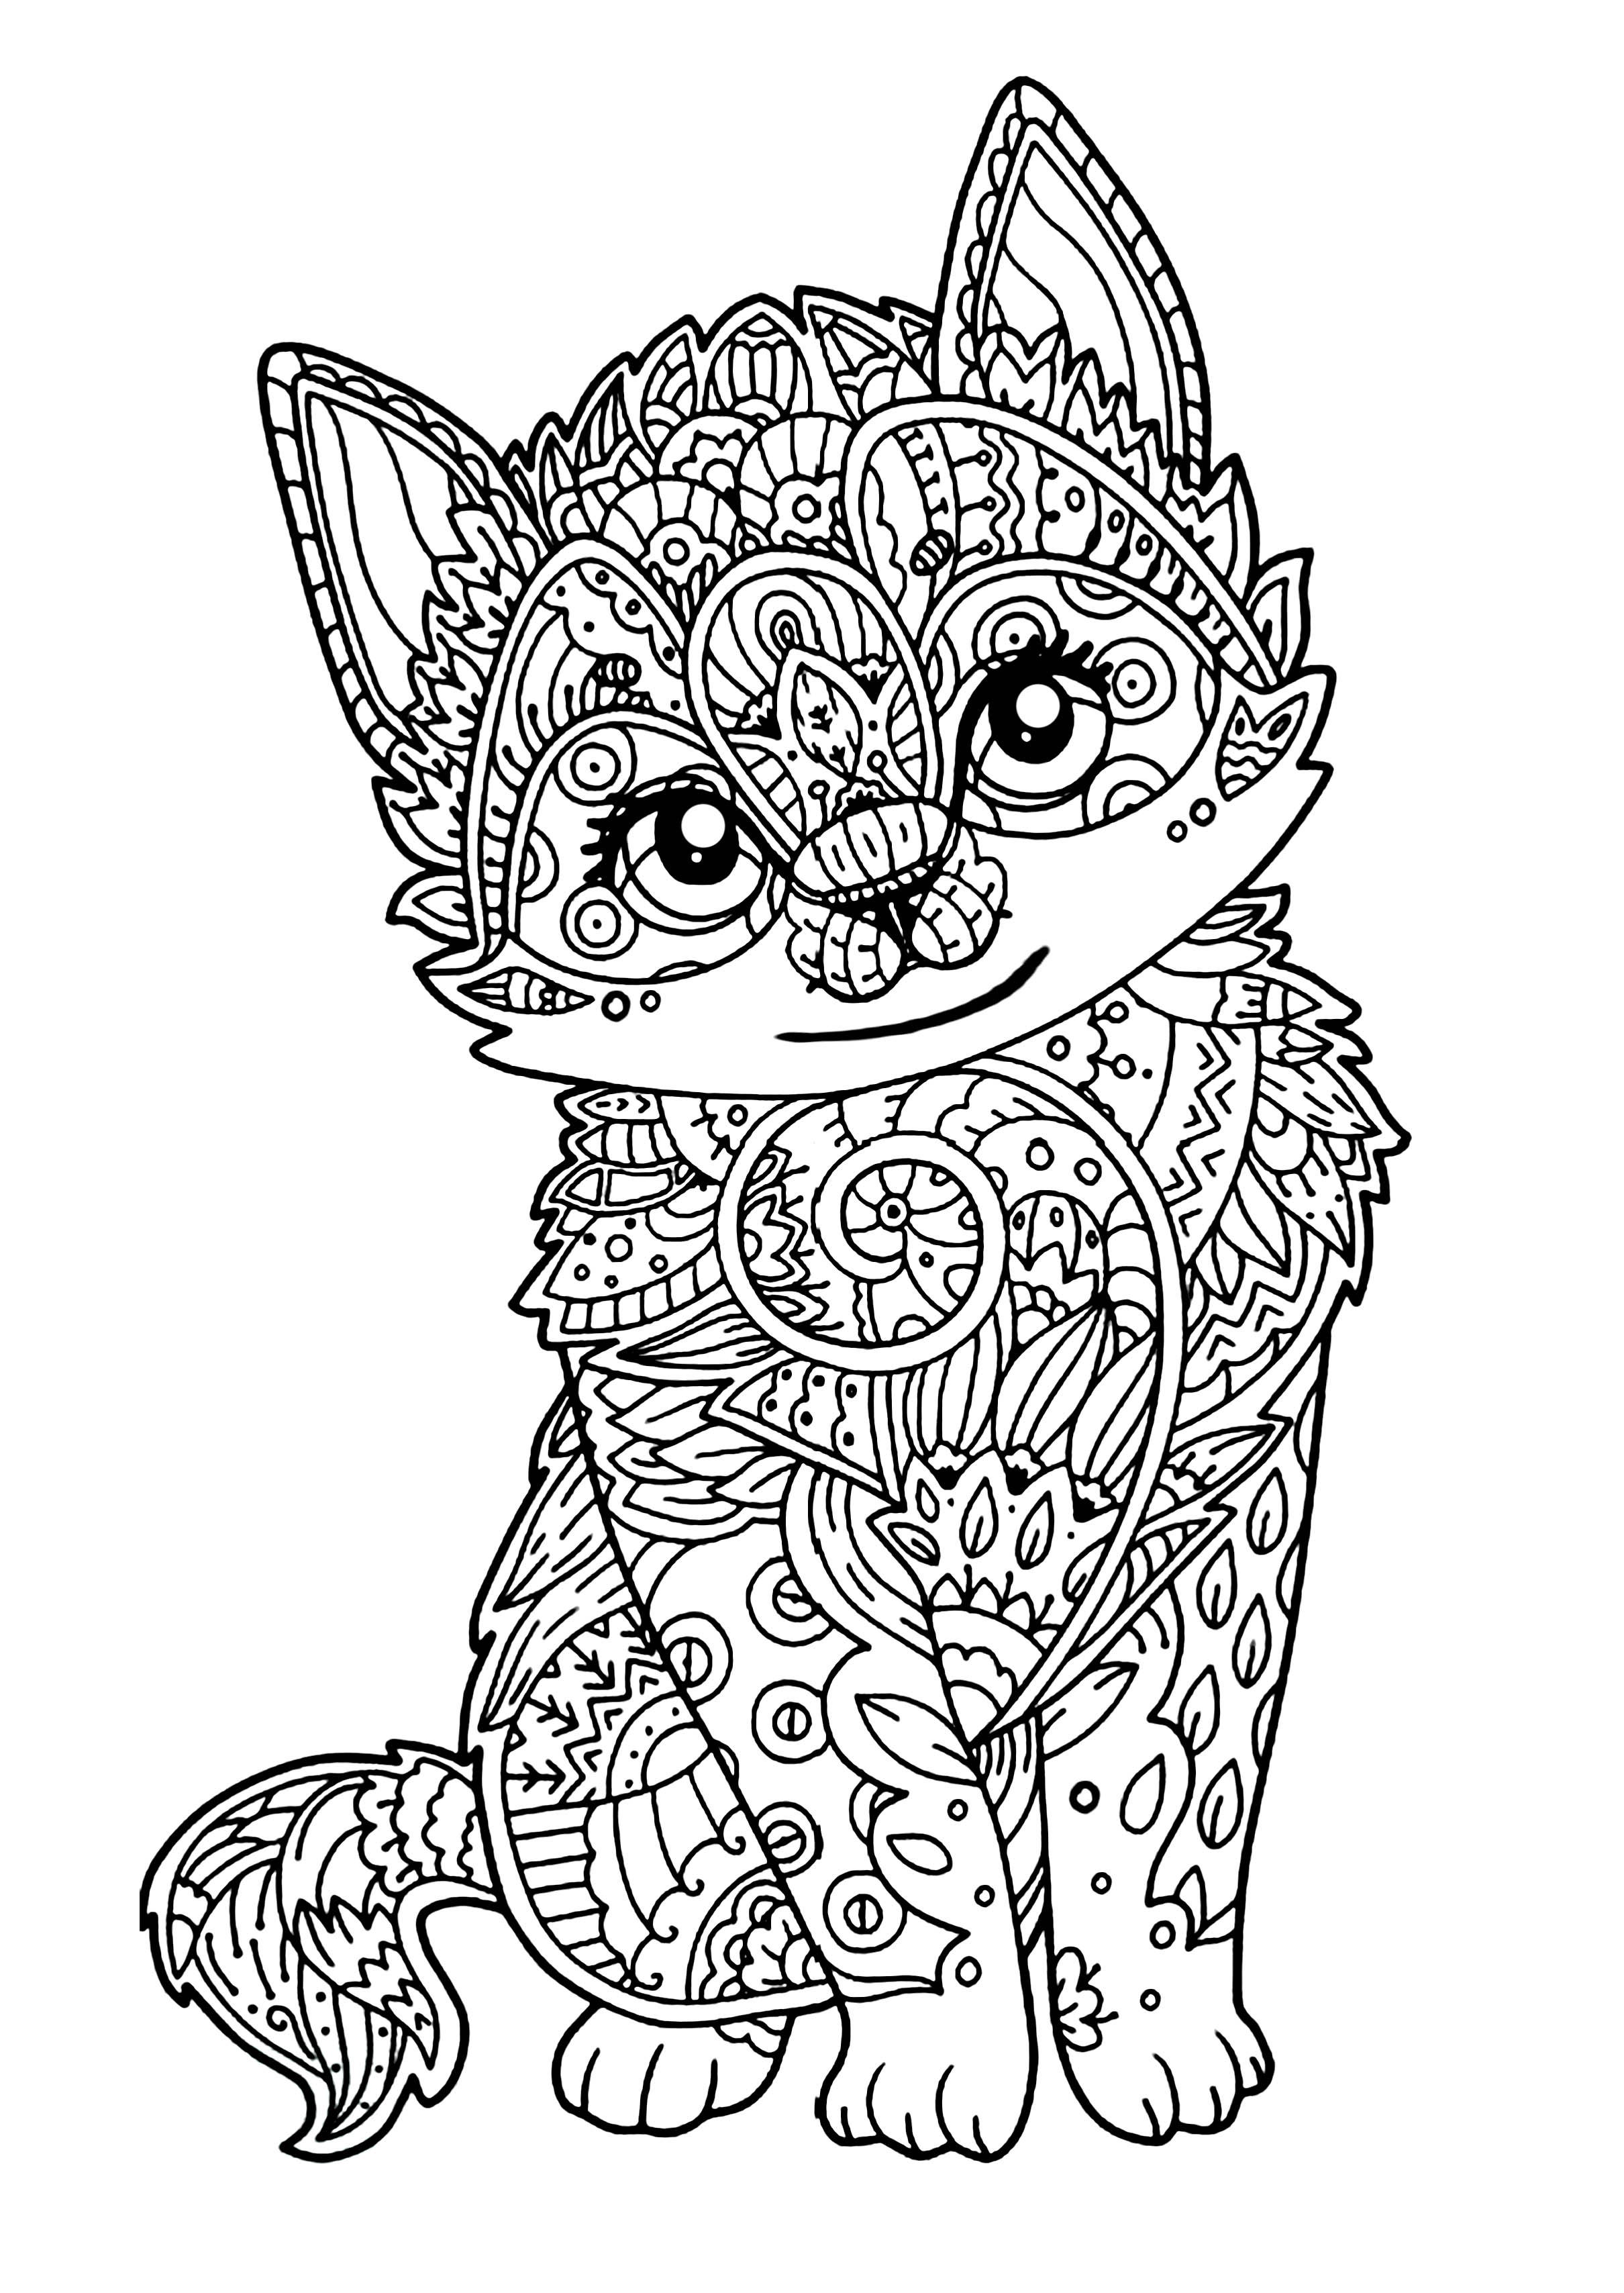 coloring pages of squishies | Squishies Coloring Pages